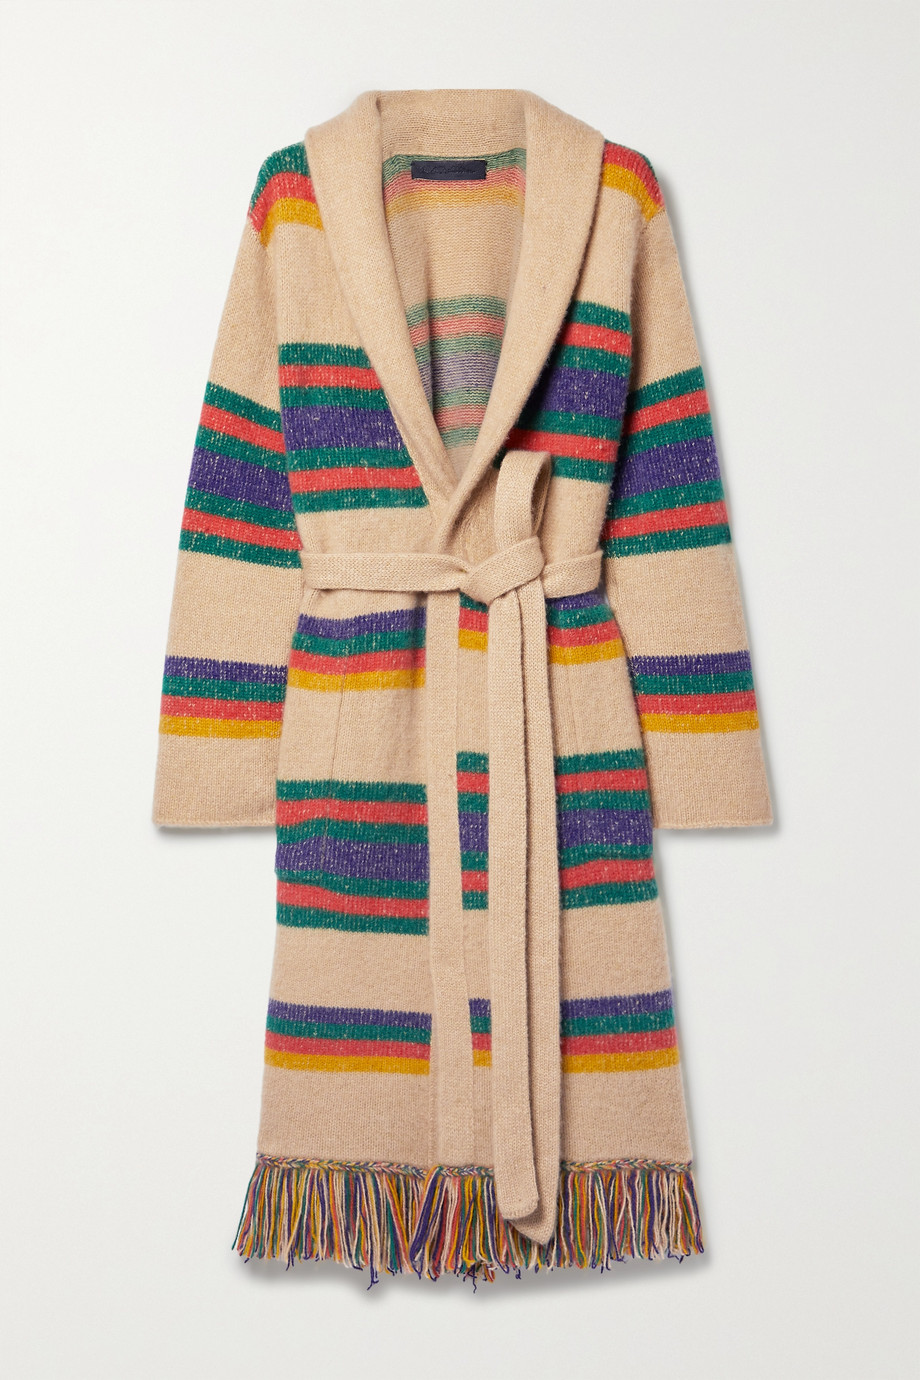 THE ELDER STATESMAN Pier fringed striped belted cashmere cardigan